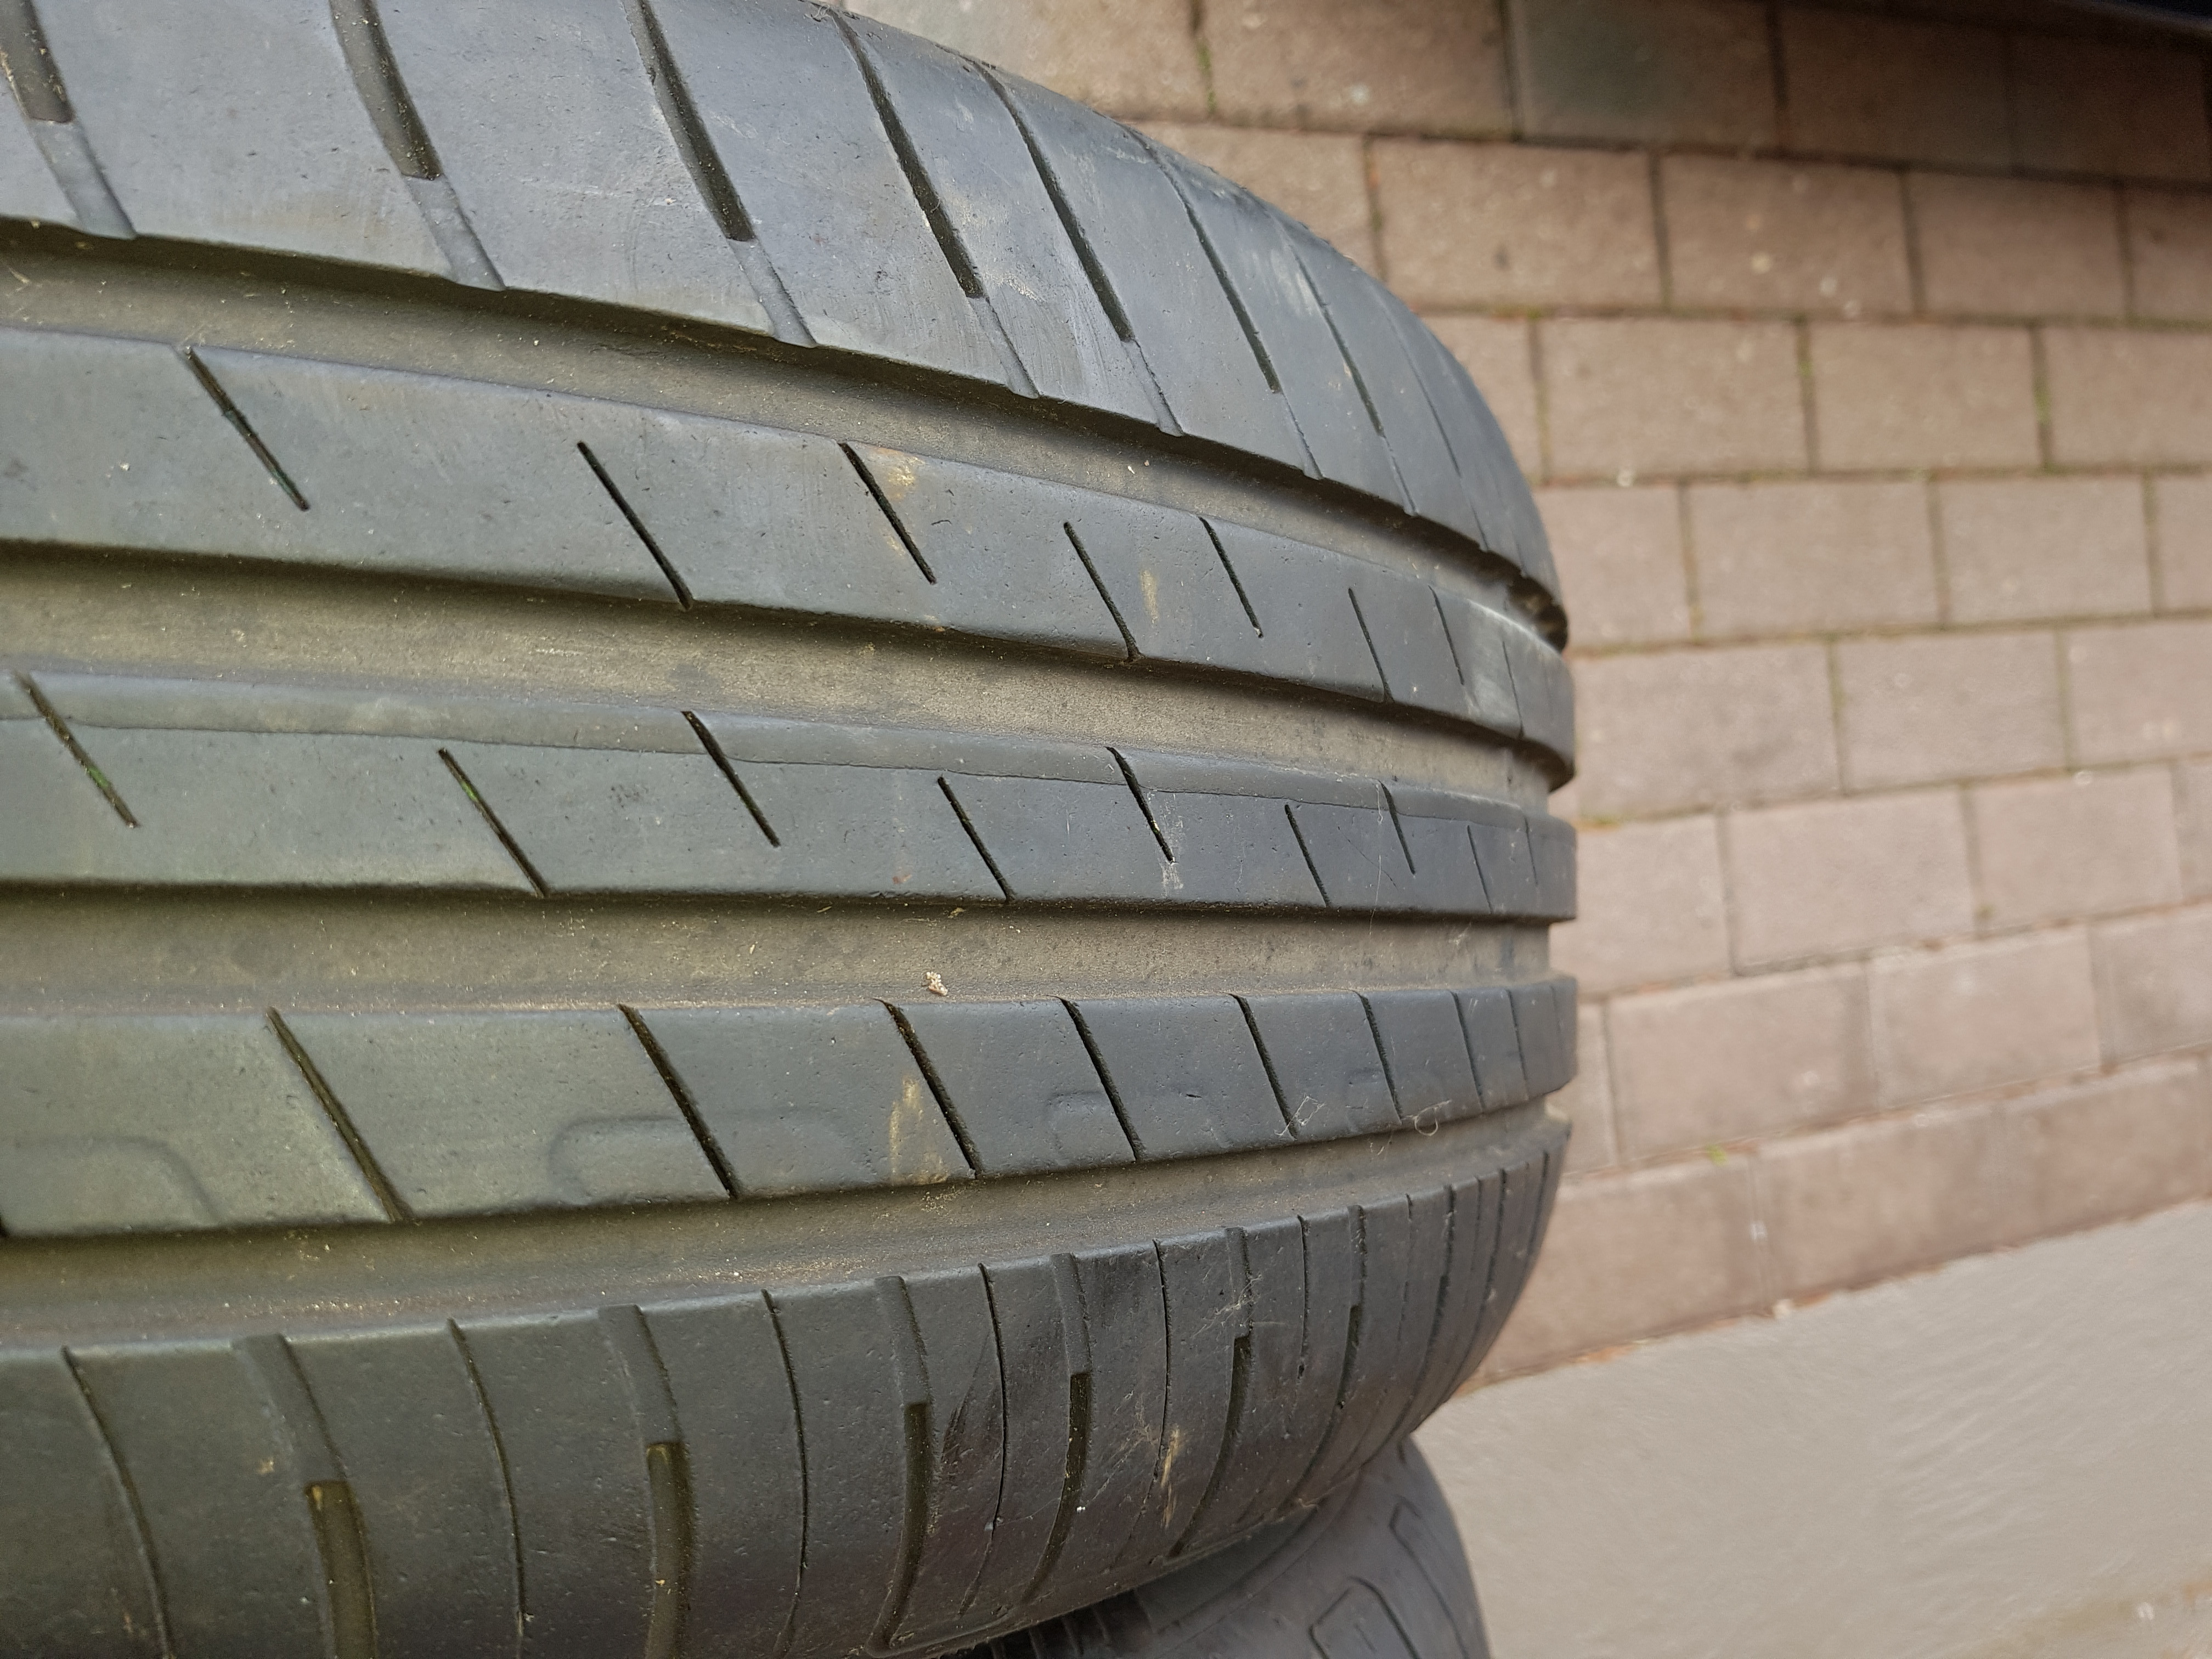 Sommerreifen 225 50 R17, GoodYear, DOT06/17, 6,5 mm